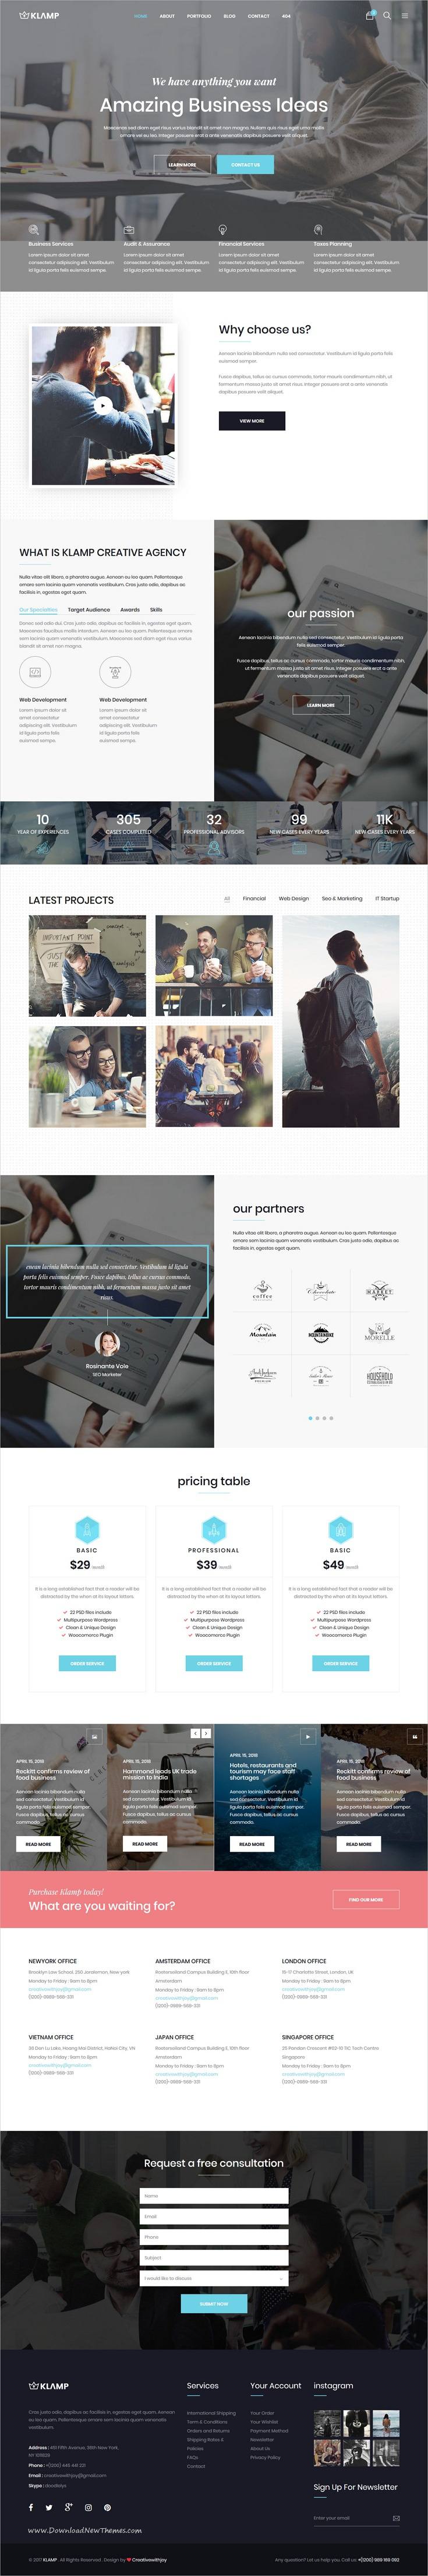 Klamp - Multipurpose HTML Template | Template, Web design ...